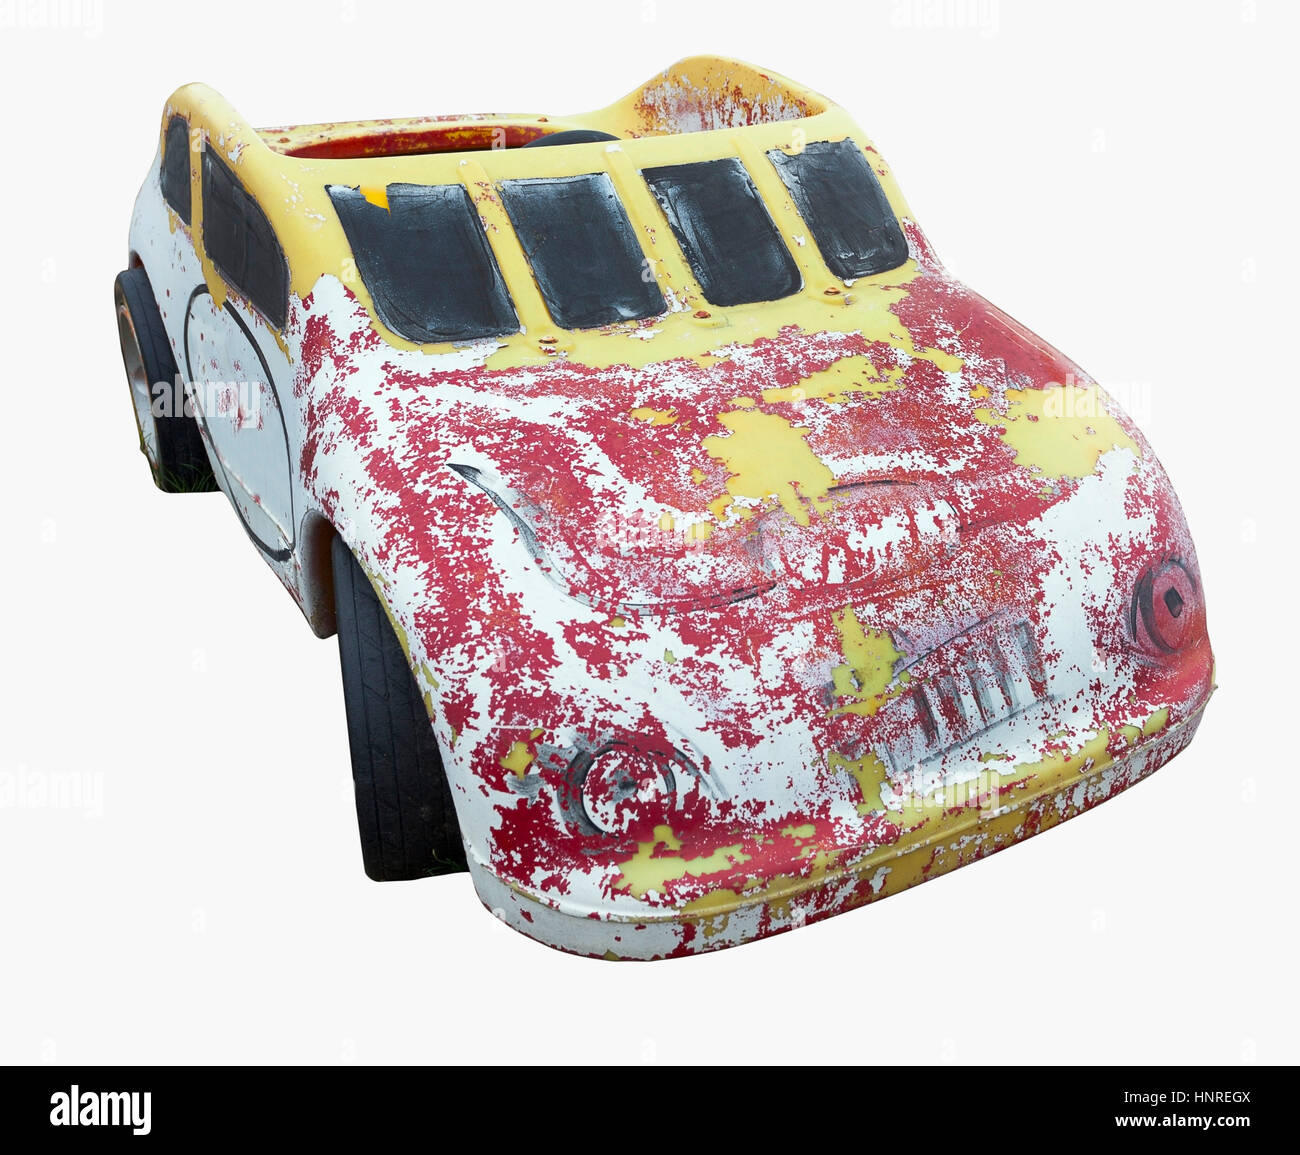 Weather-beaten child's red and yellow play car. Isolated. Stock Photo